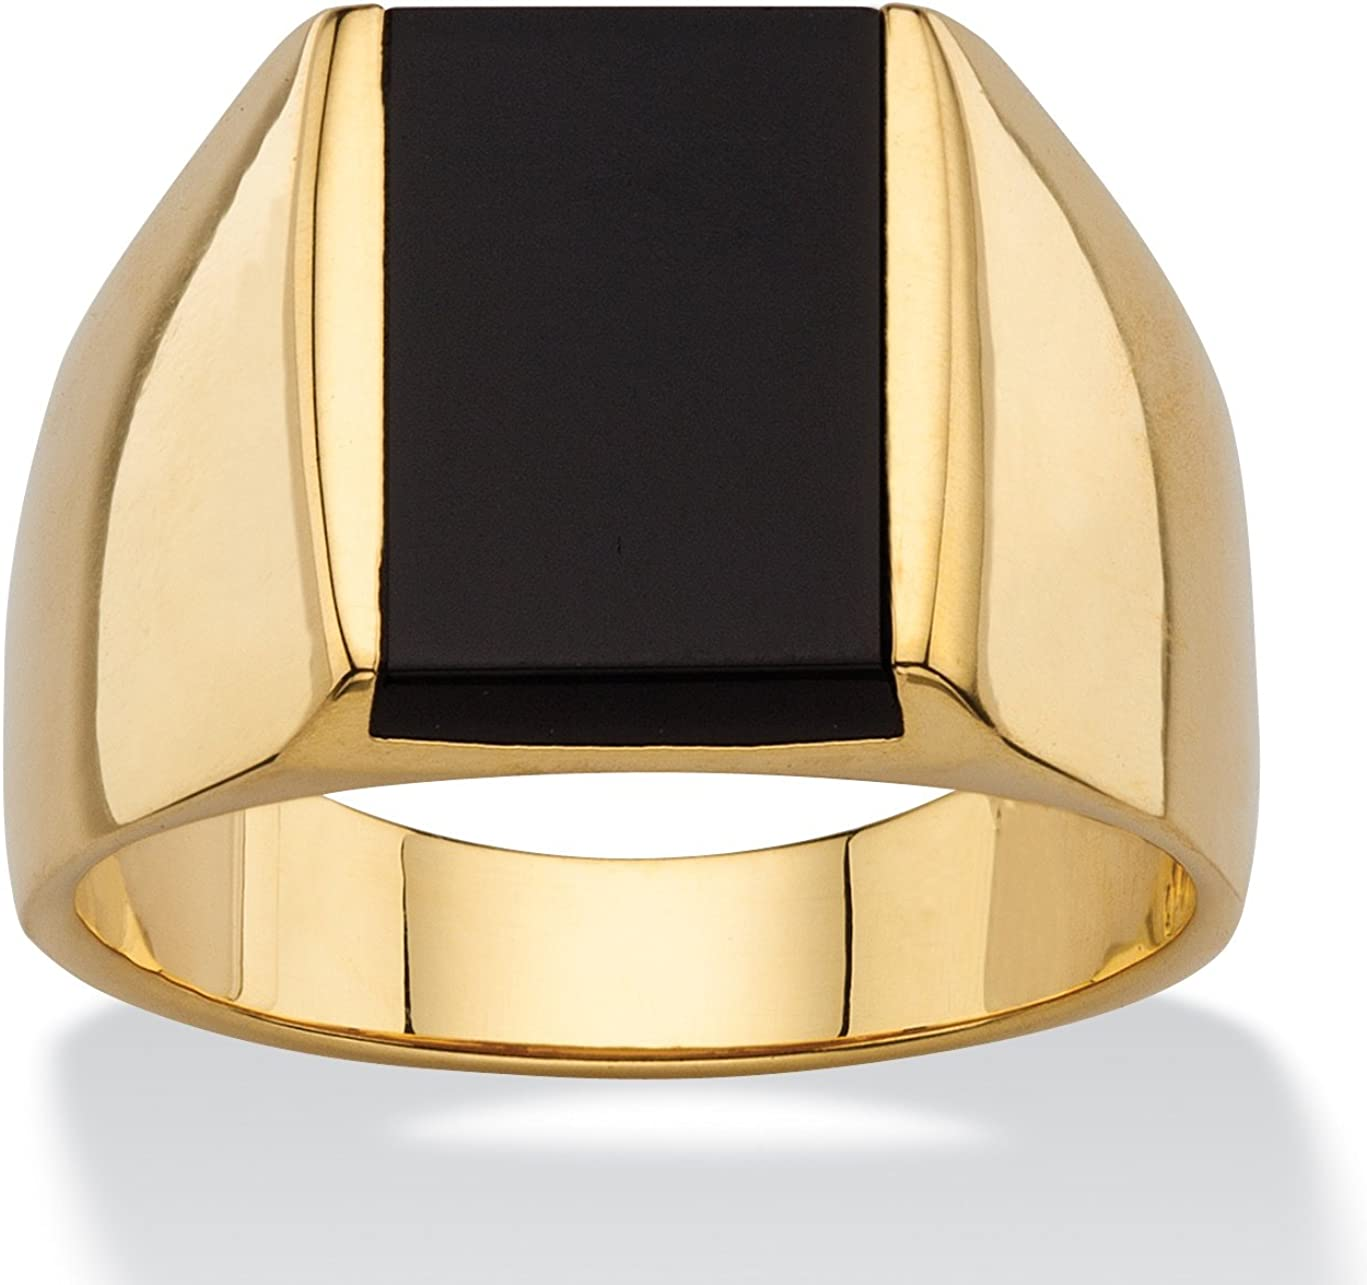 Palm Beach Jewelry Men's 14K Yellow Gold Plated Emerald Cut Natural Black Onyx Ring